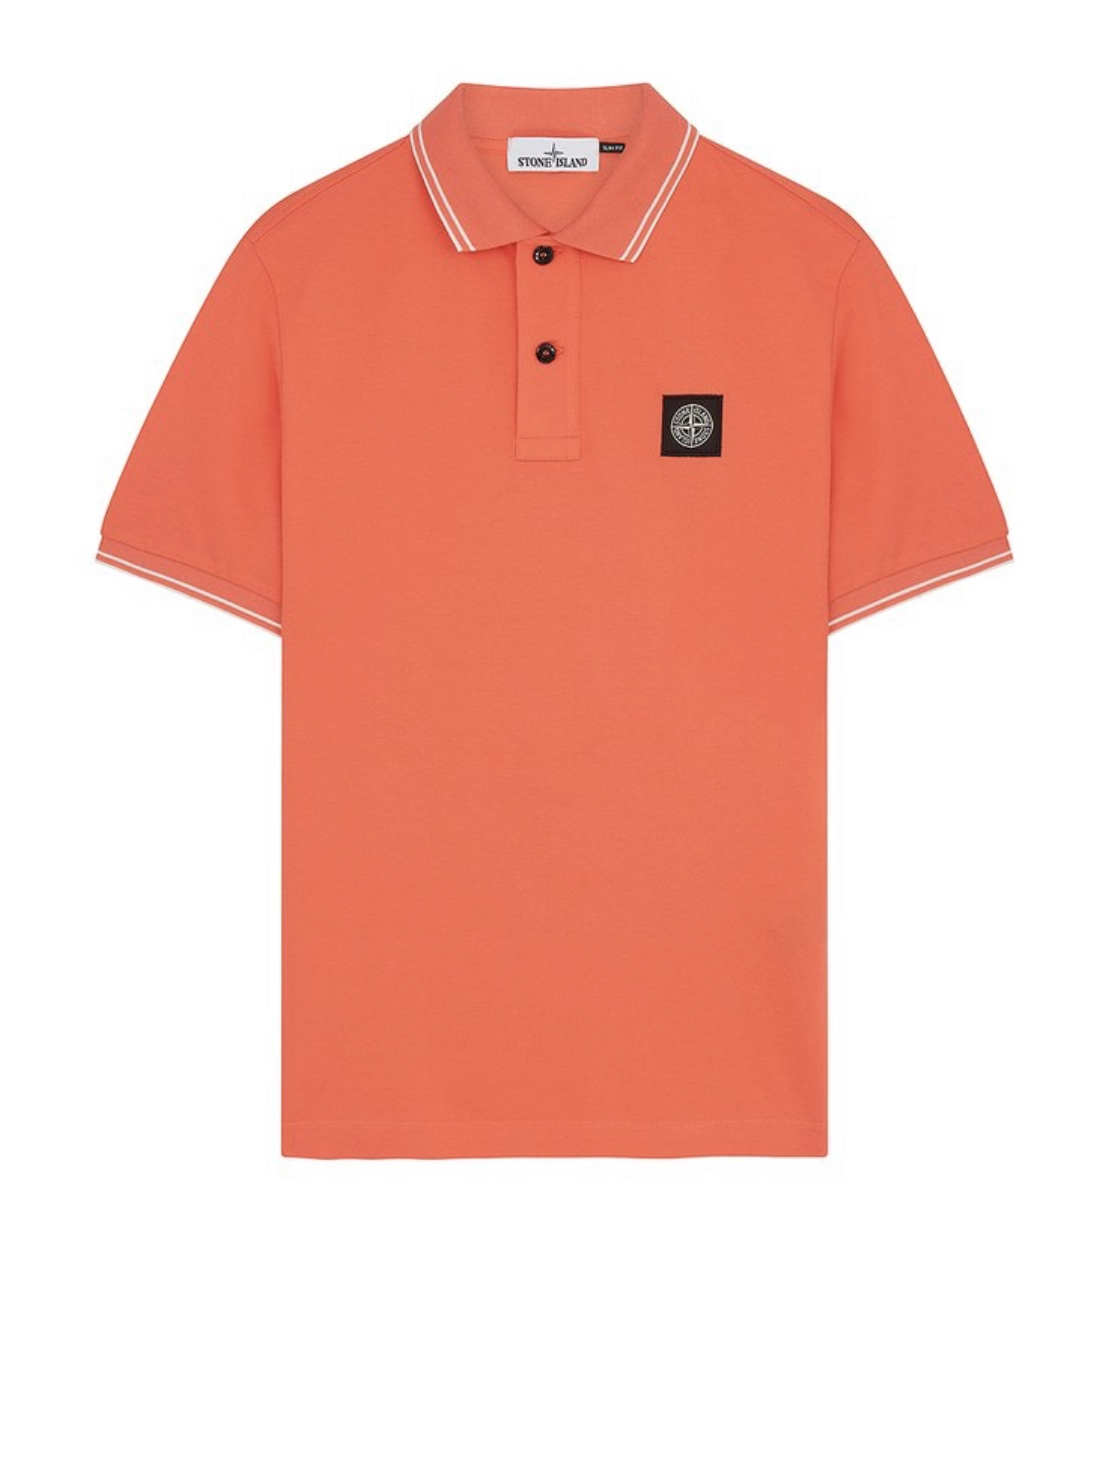 Polo Shirt In Orange Red